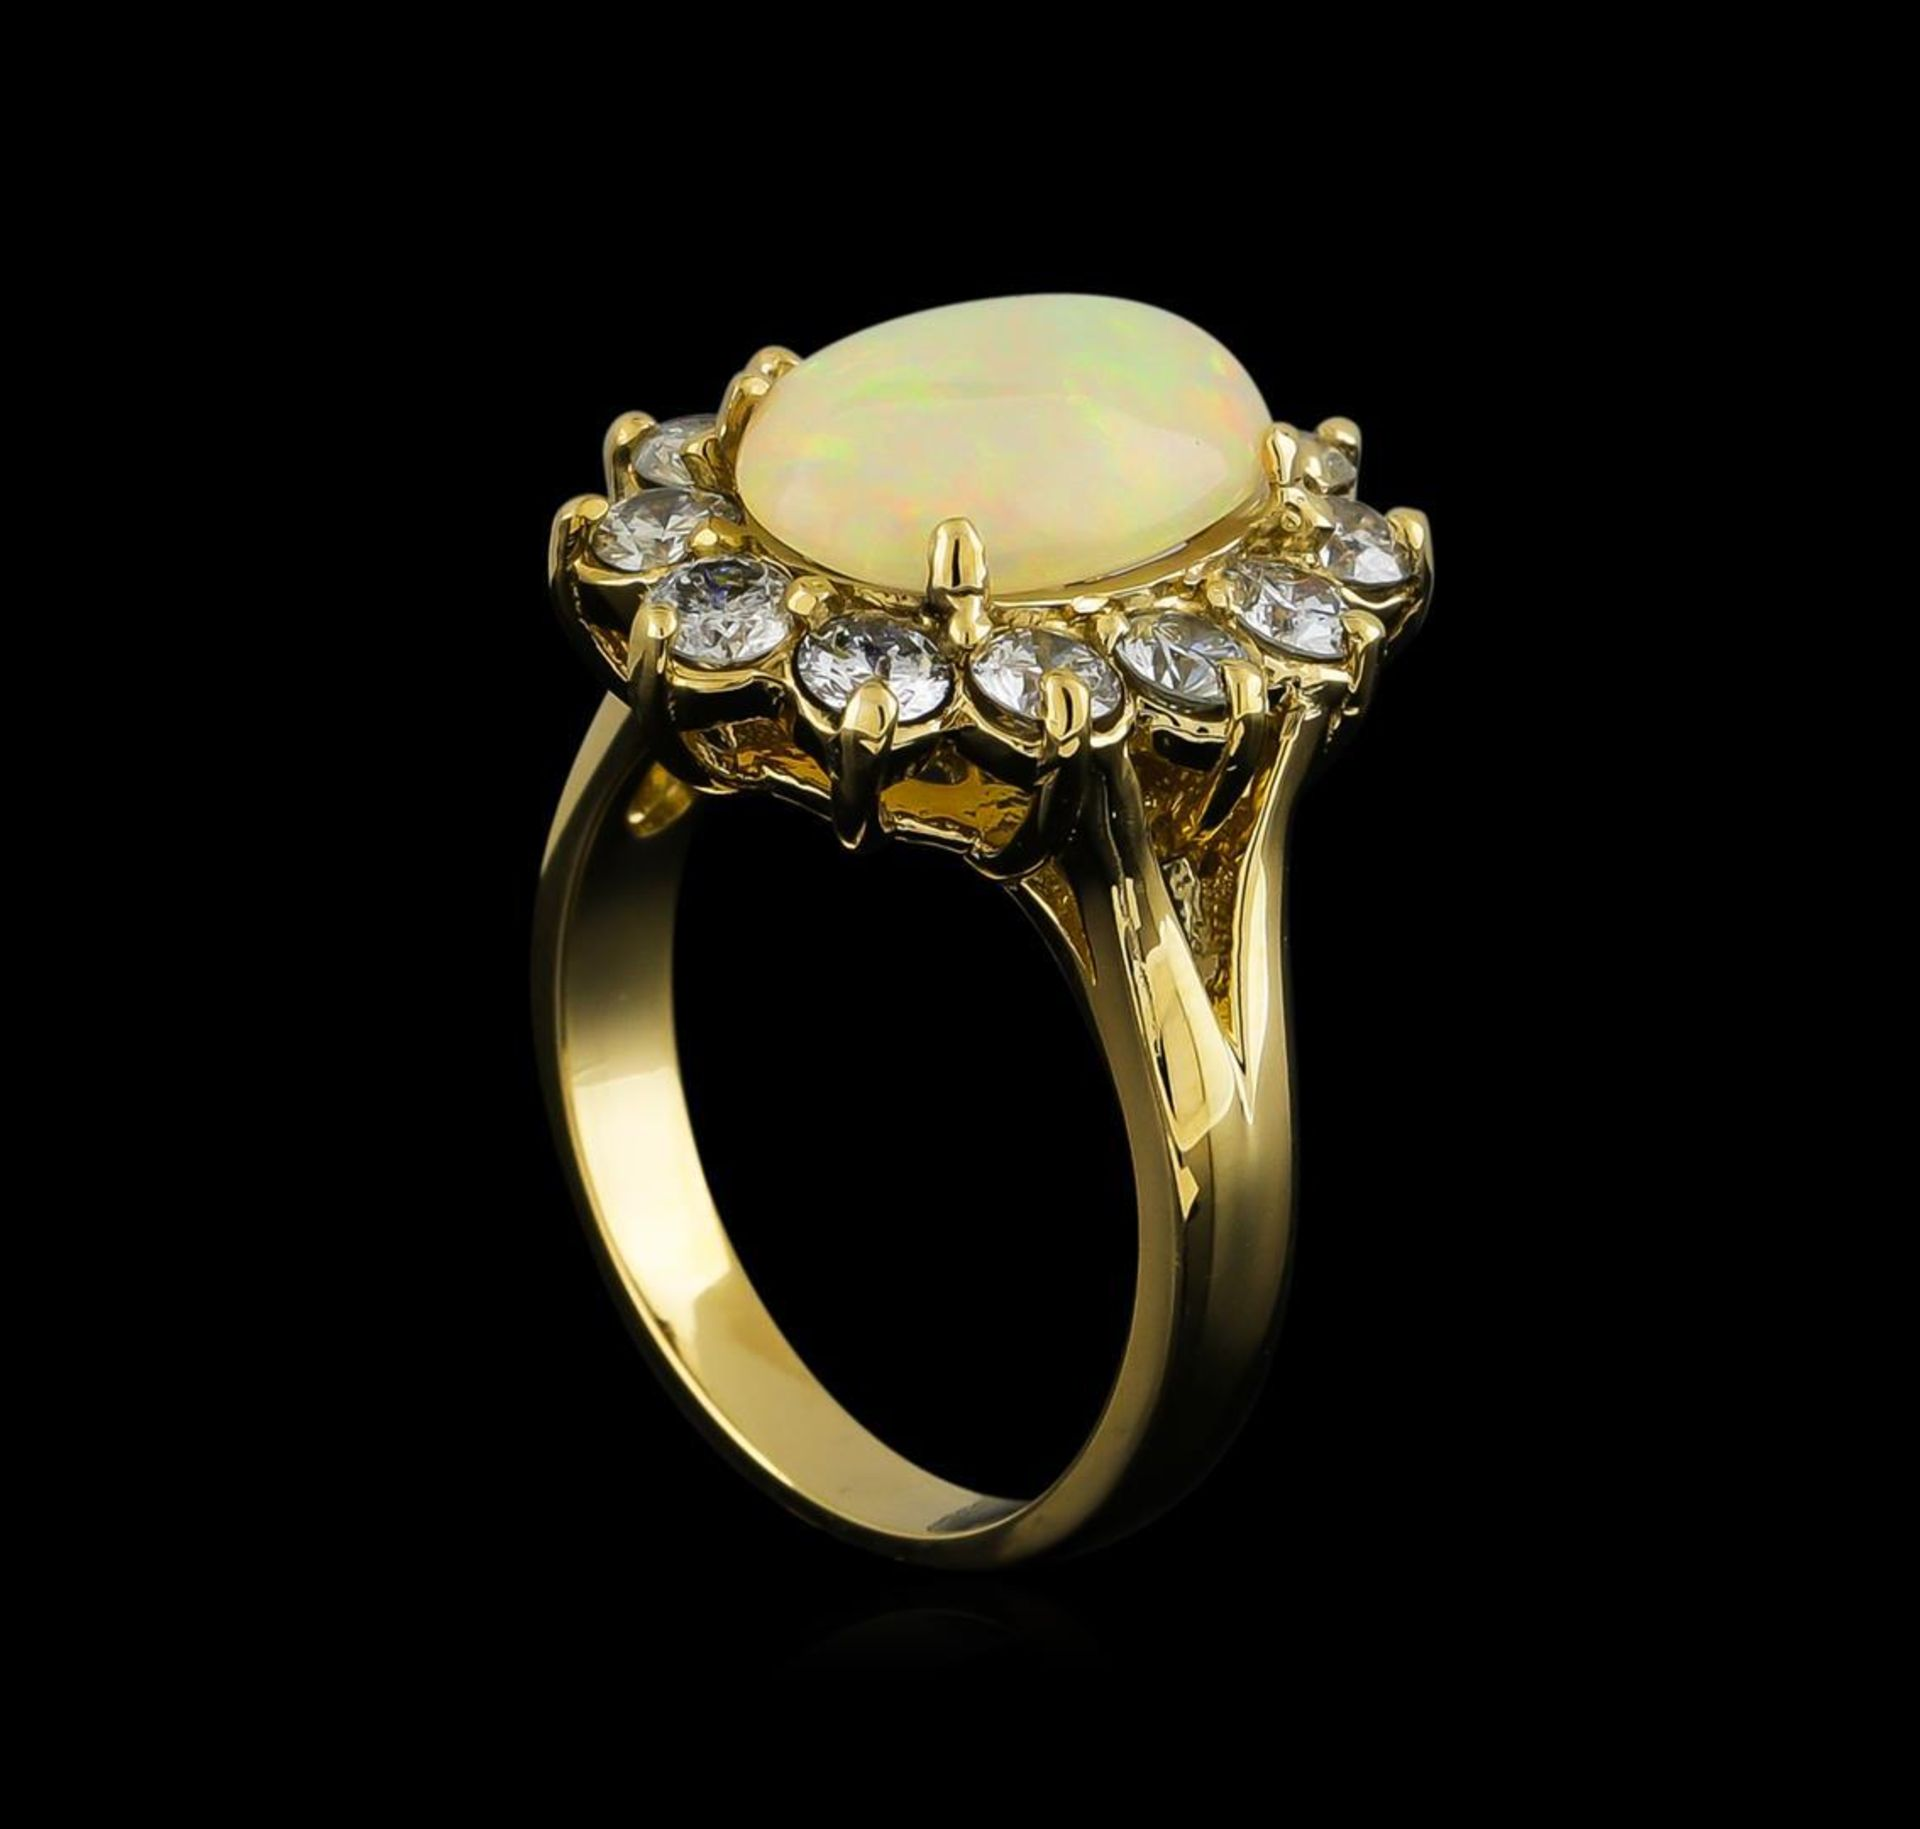 2.56 ctw Opal and Diamond Ring - 14KT Yellow Gold - Image 4 of 5